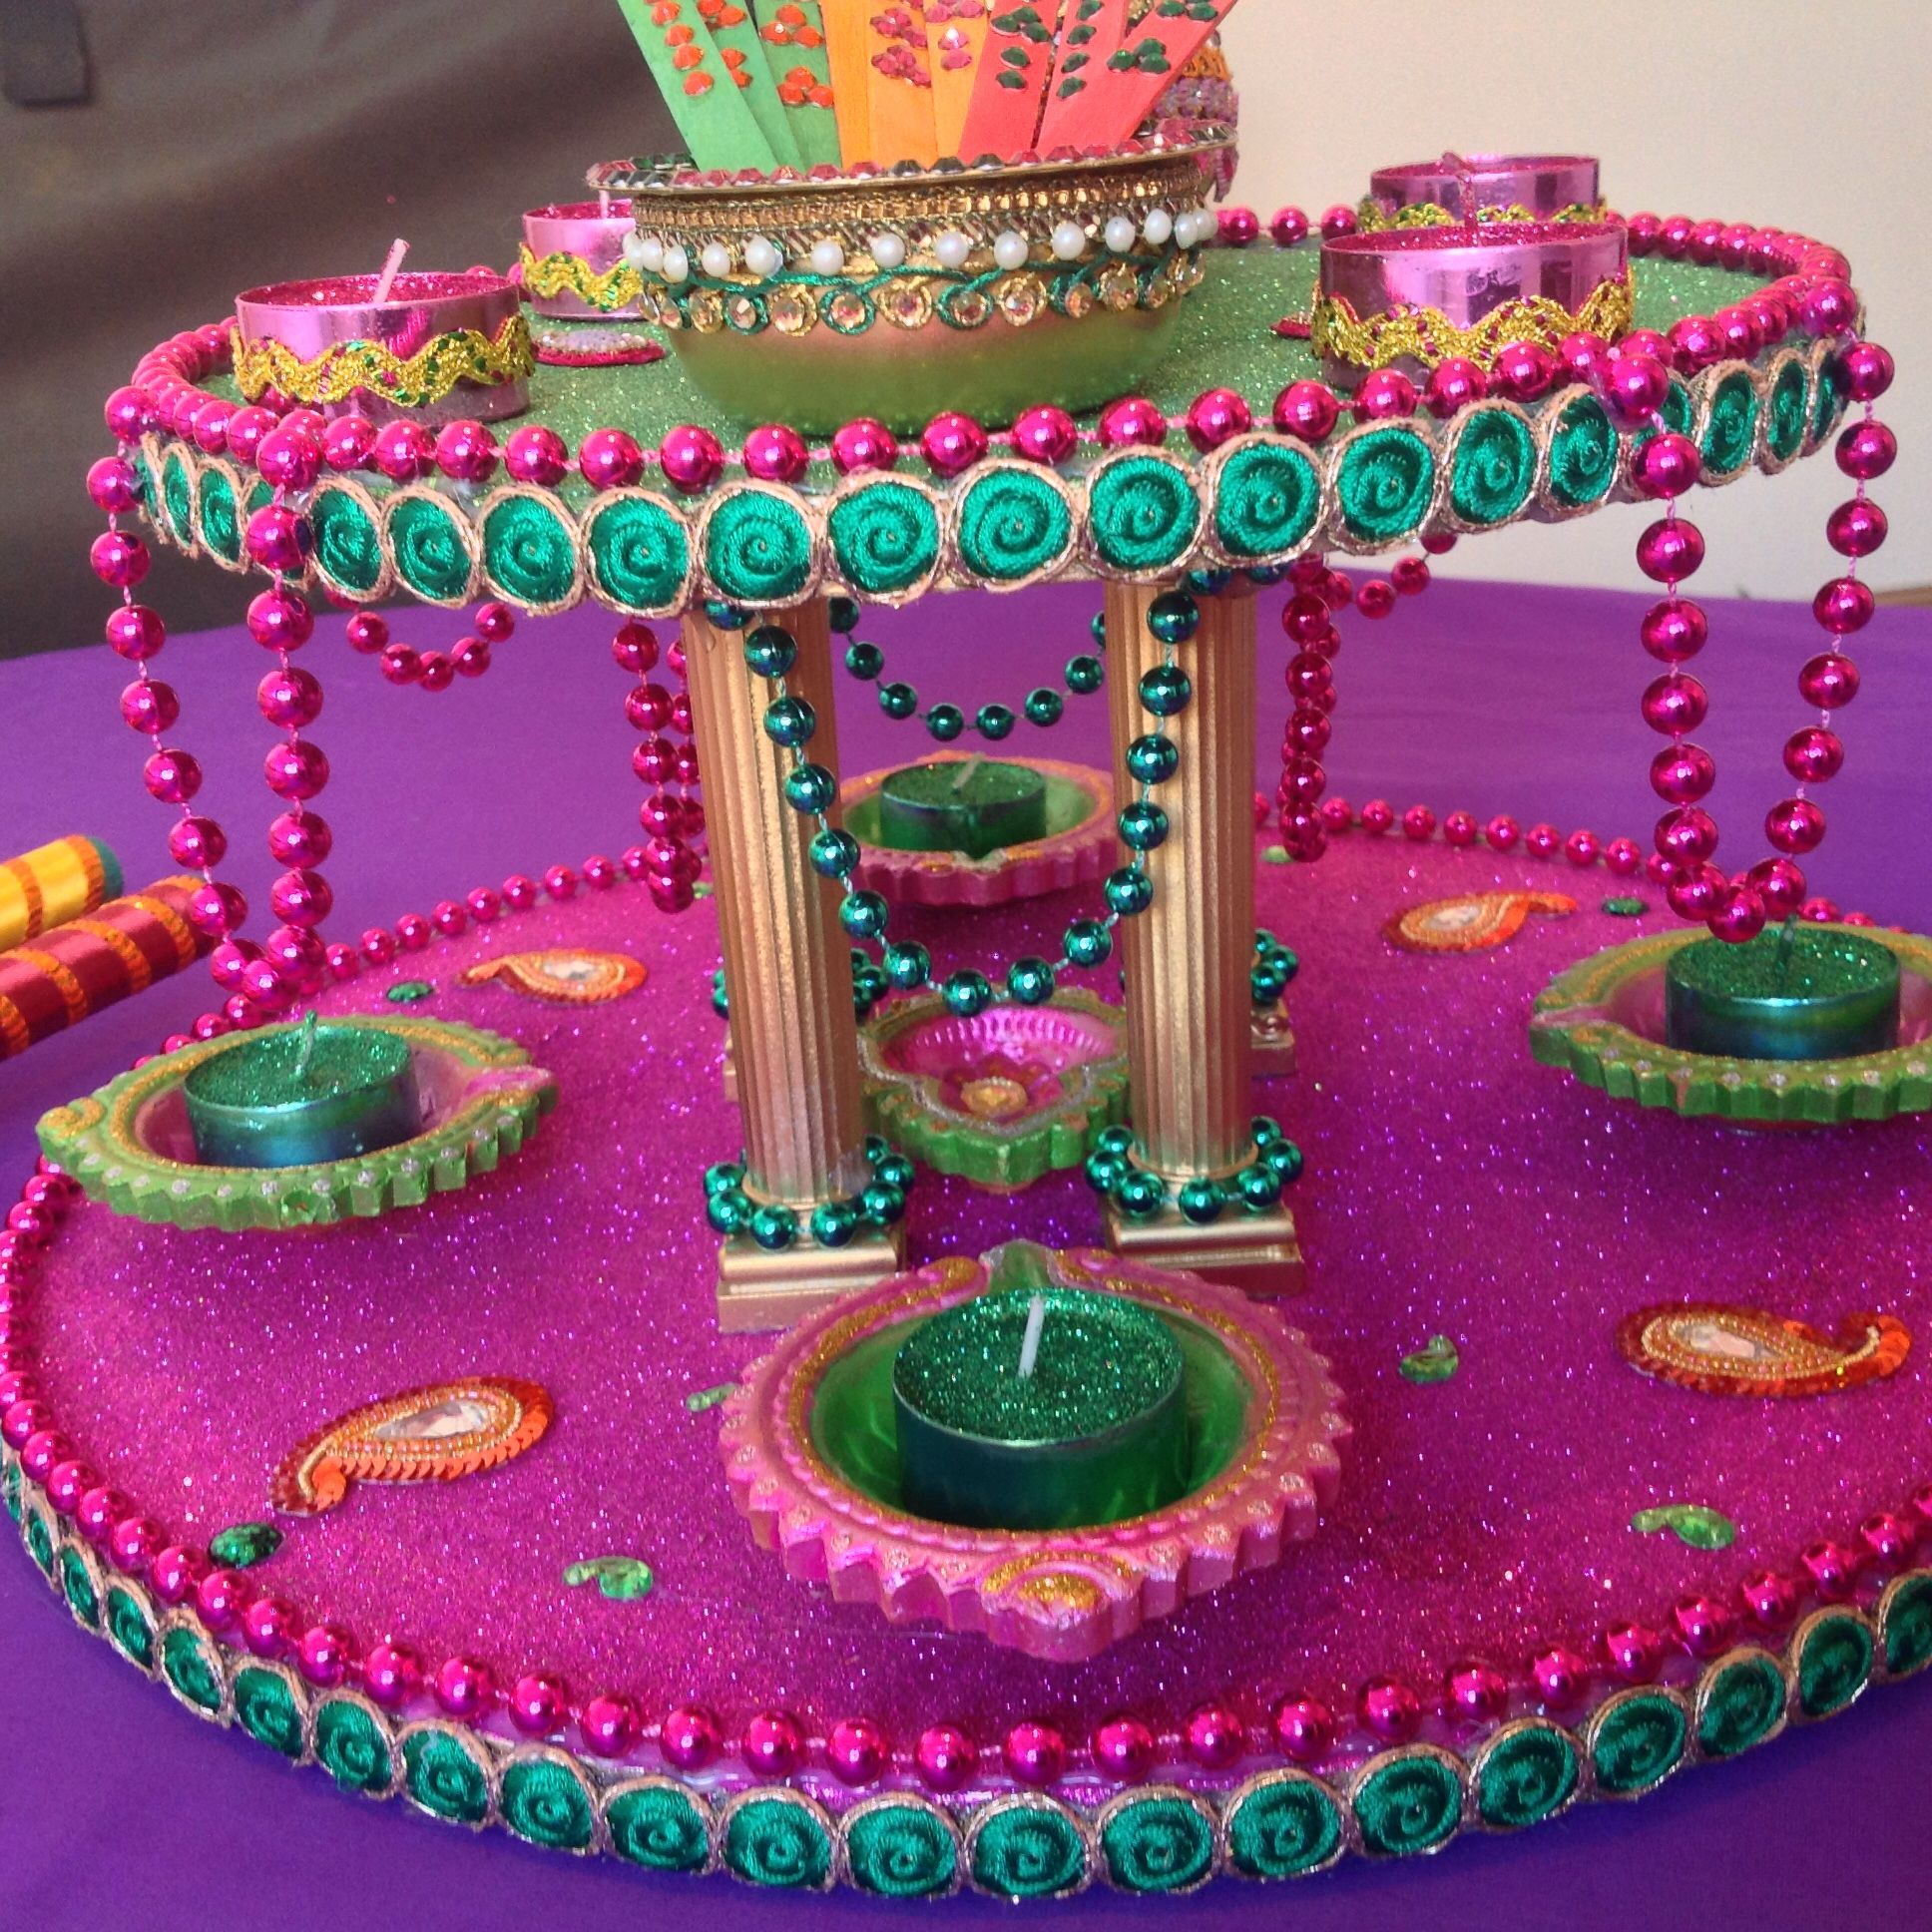 Mehndi Decor Supplies : Double tiered mehndi plates this is a stunning